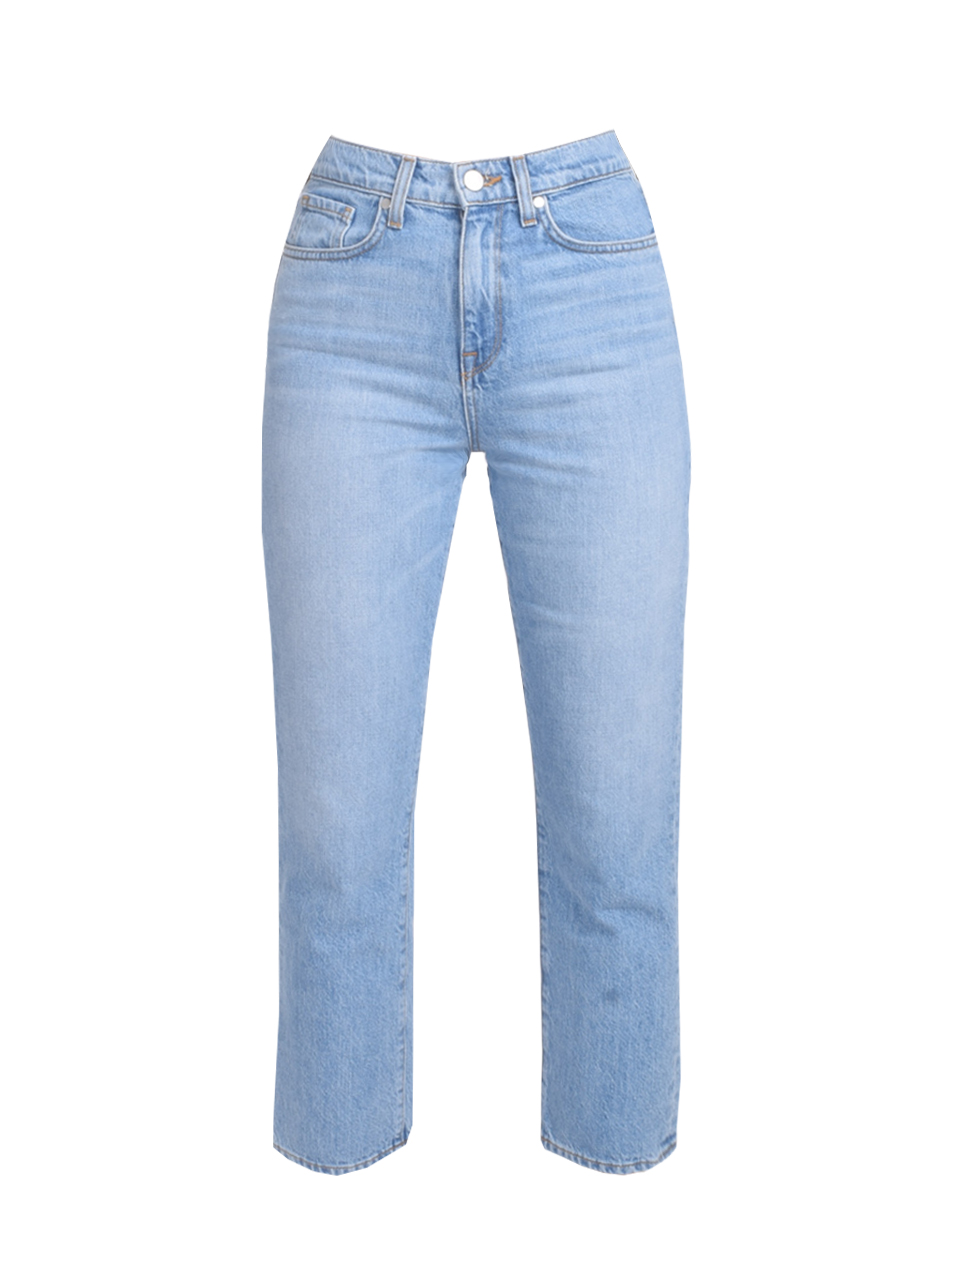 BLDWN Vintage Straight Jeans In Skylight